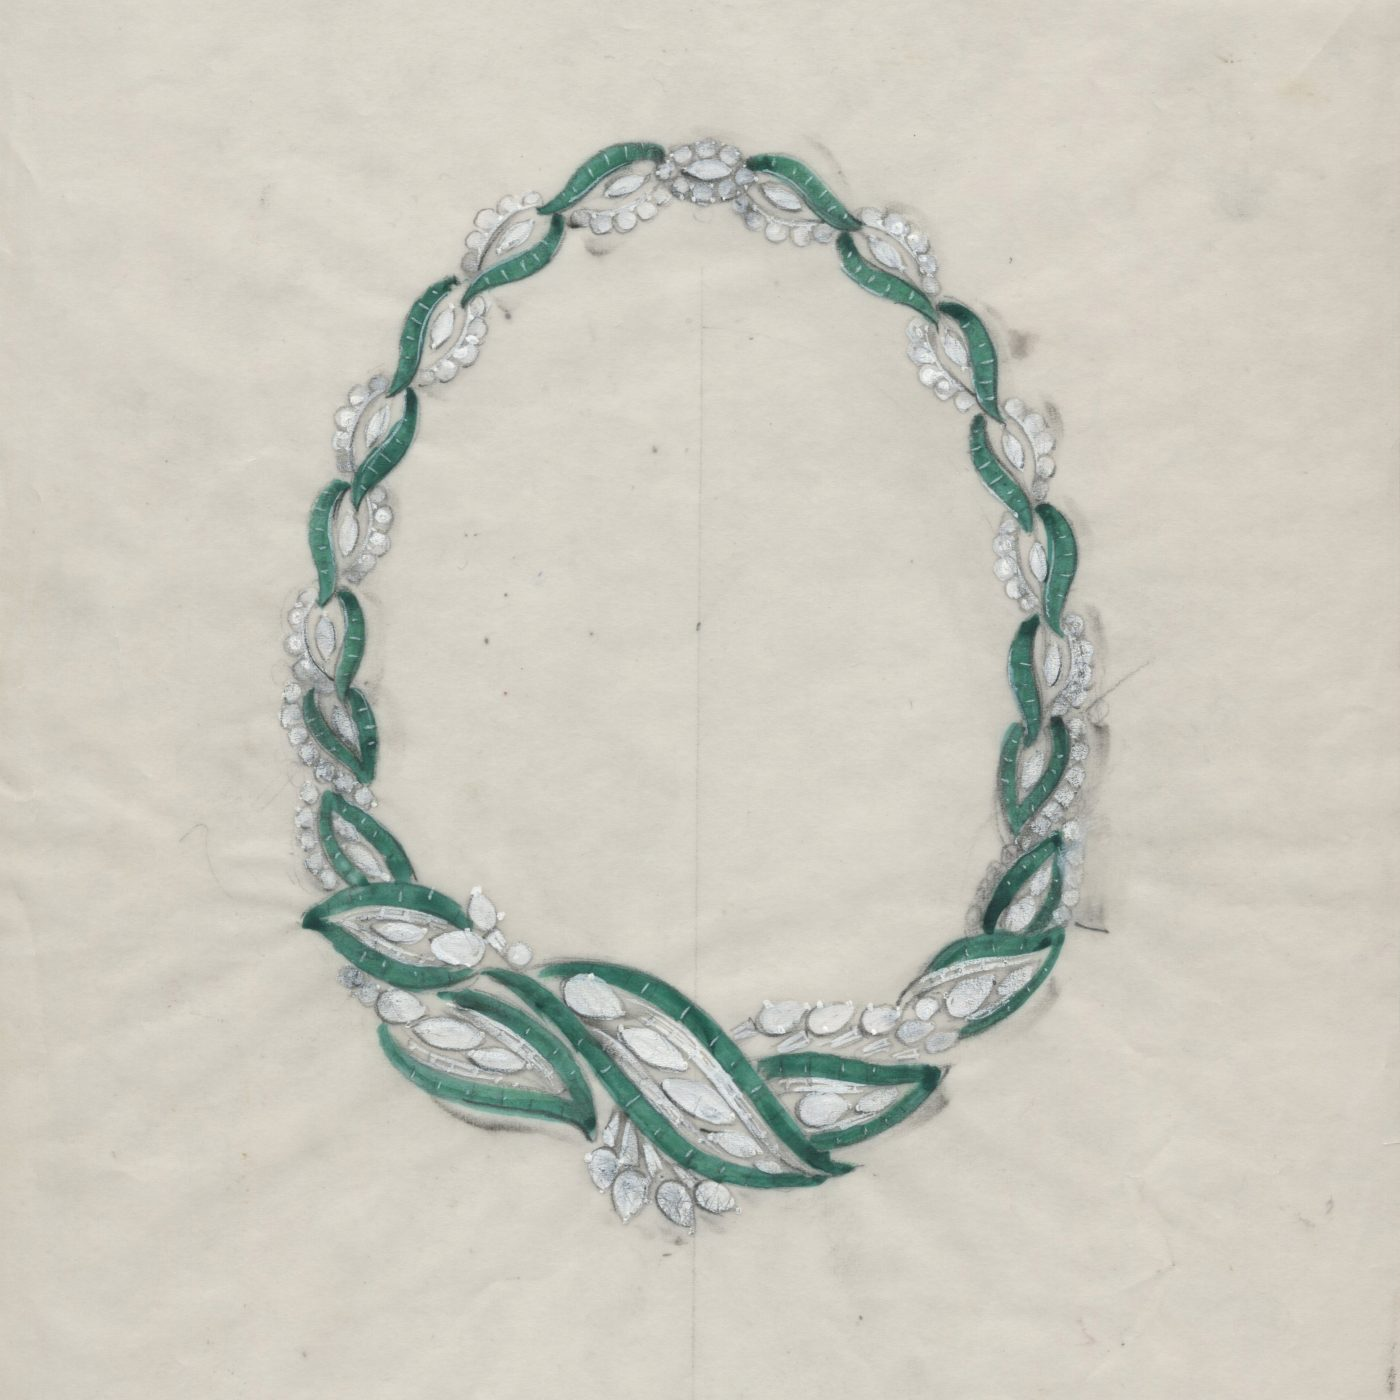 an emerald and diamond necklace first purchased in the 1950s and later given to Elizabeth Taylor by Michael Jackson